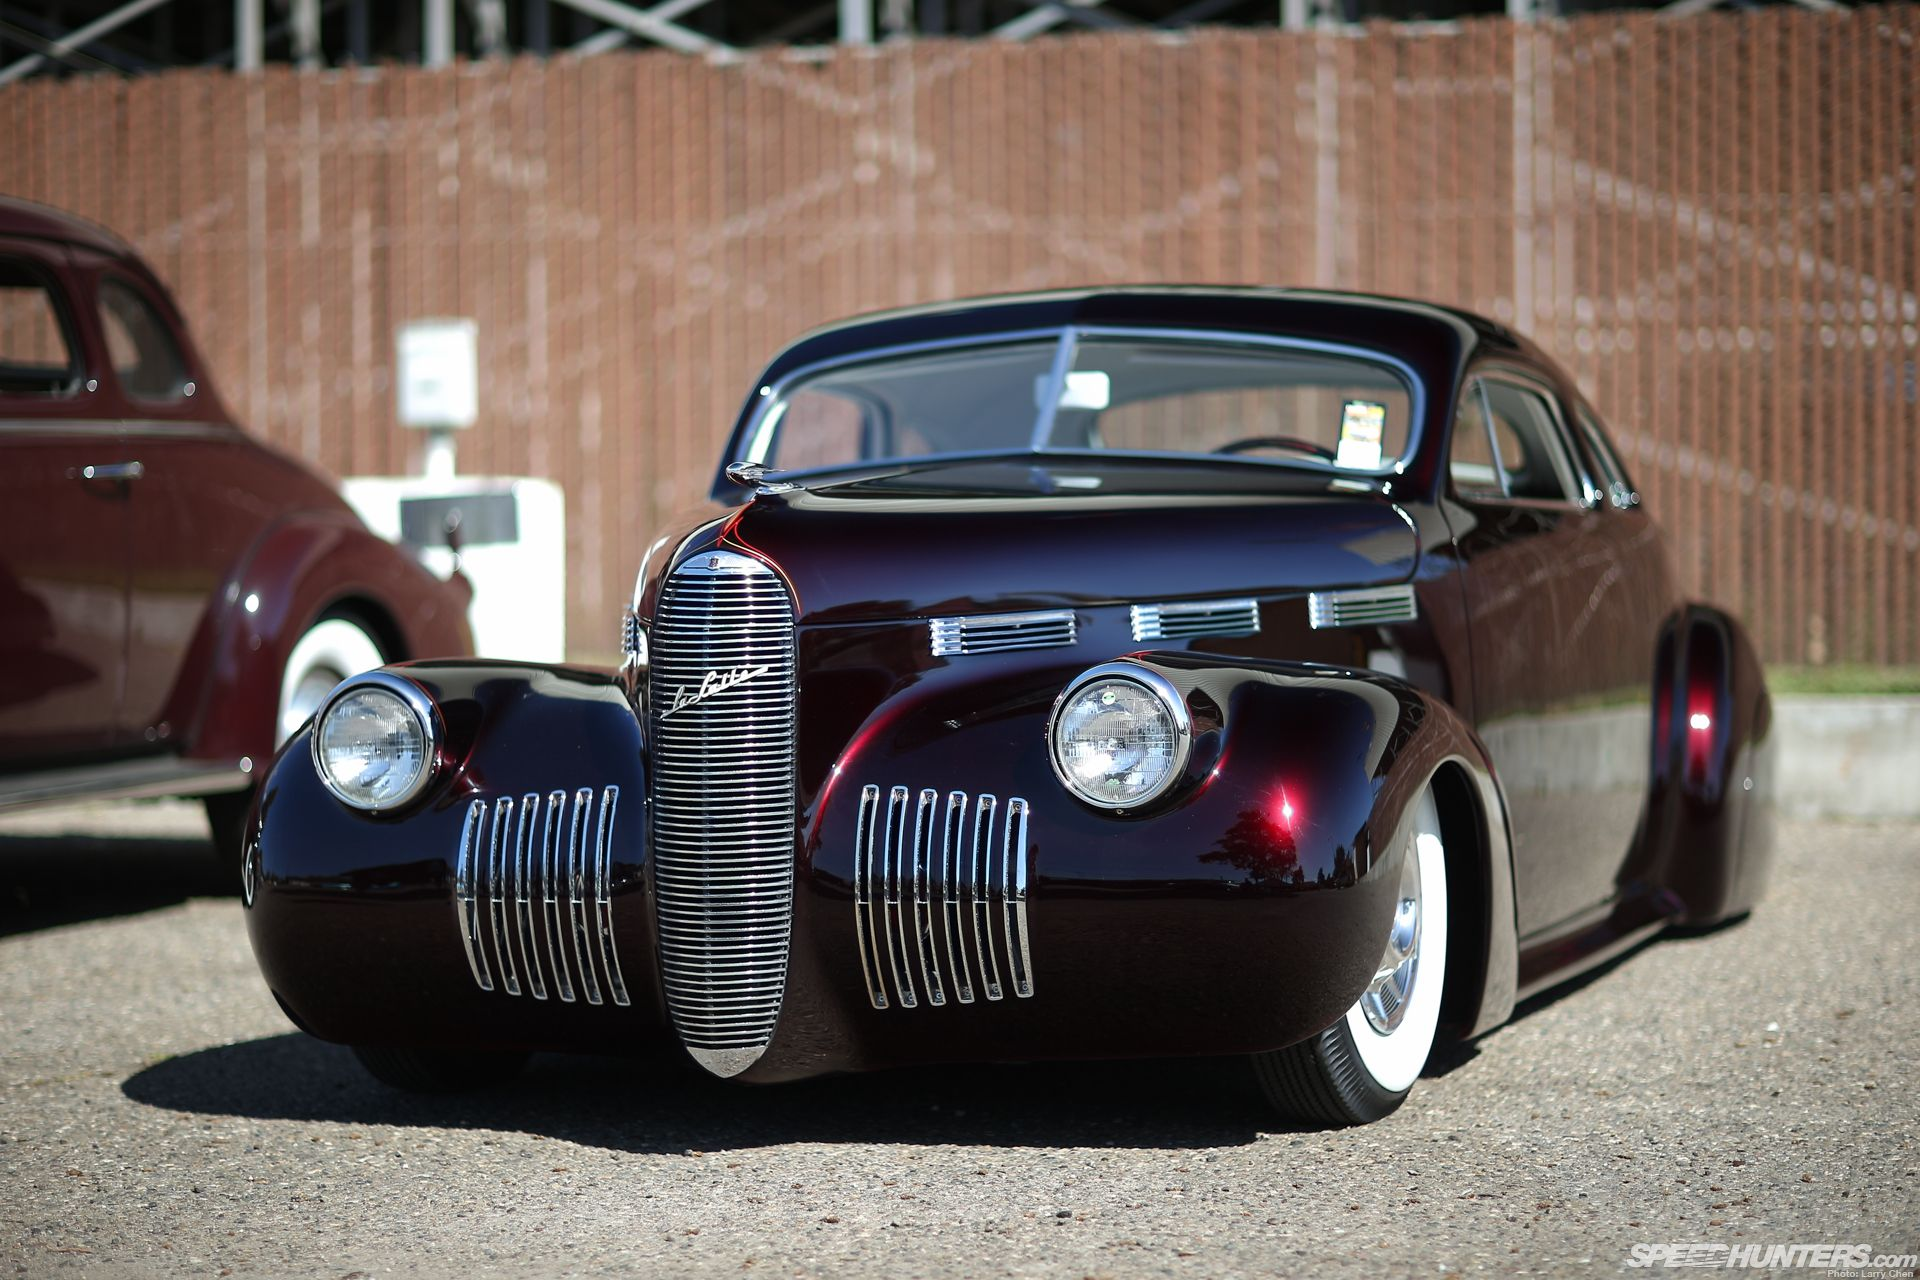 1940 cadillac lasalle - Google Search | Cars | Pinterest ...